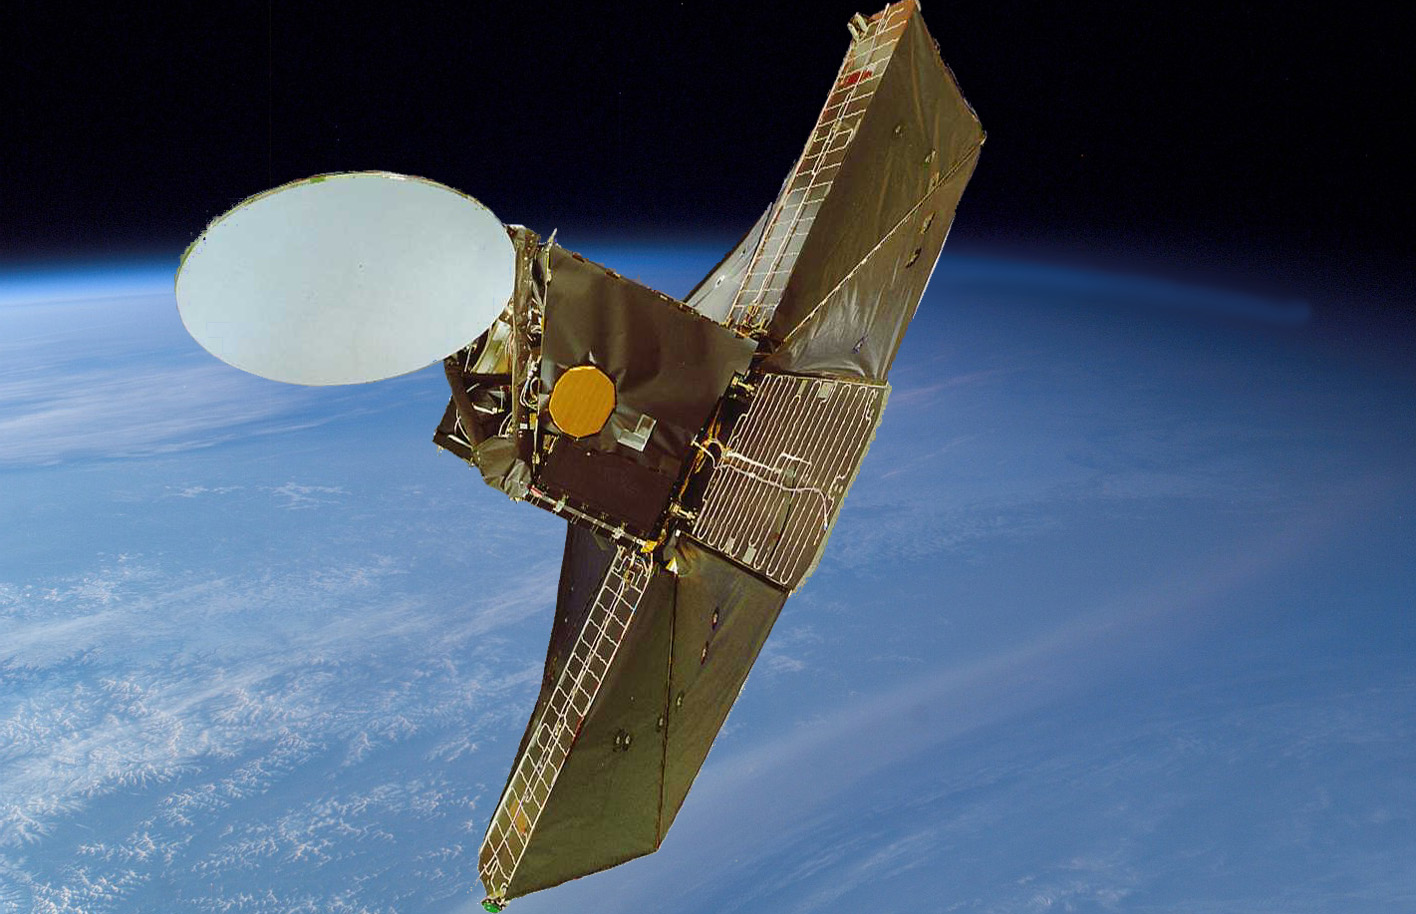 Happy Birthday, Odin! OHB Sweden satellite in service for 18 years